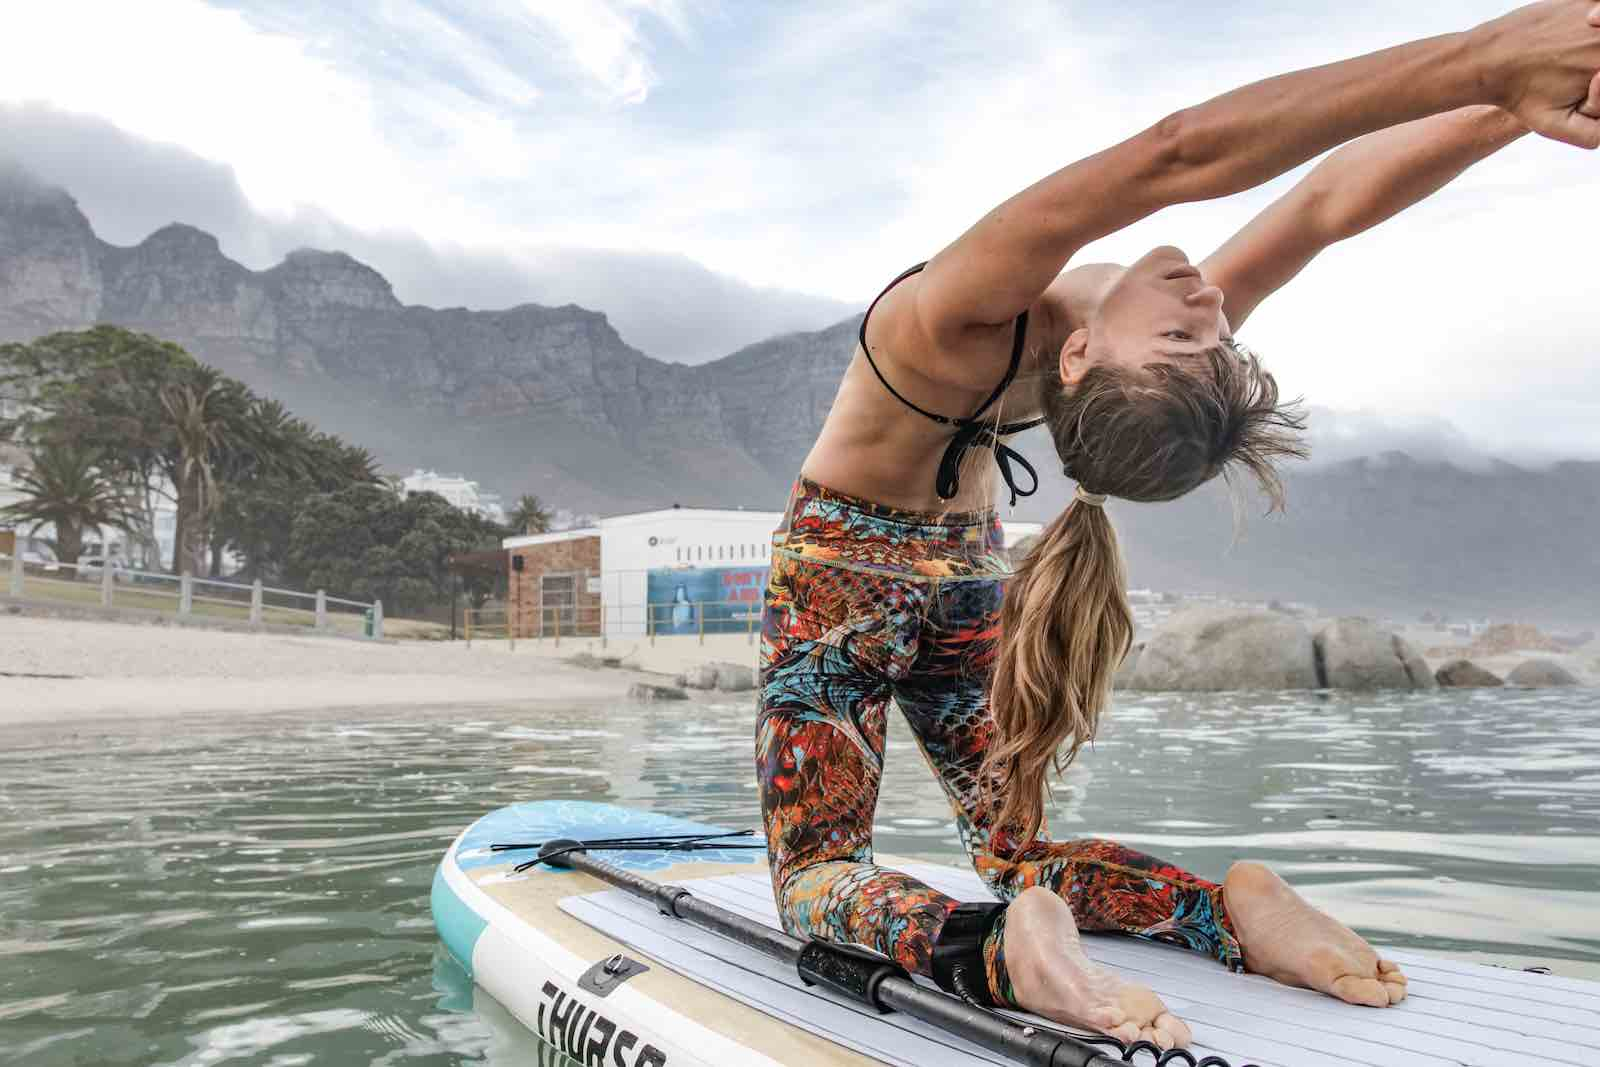 SUP Boards Yoga: The Benefits of Yoga on a Paddle Board